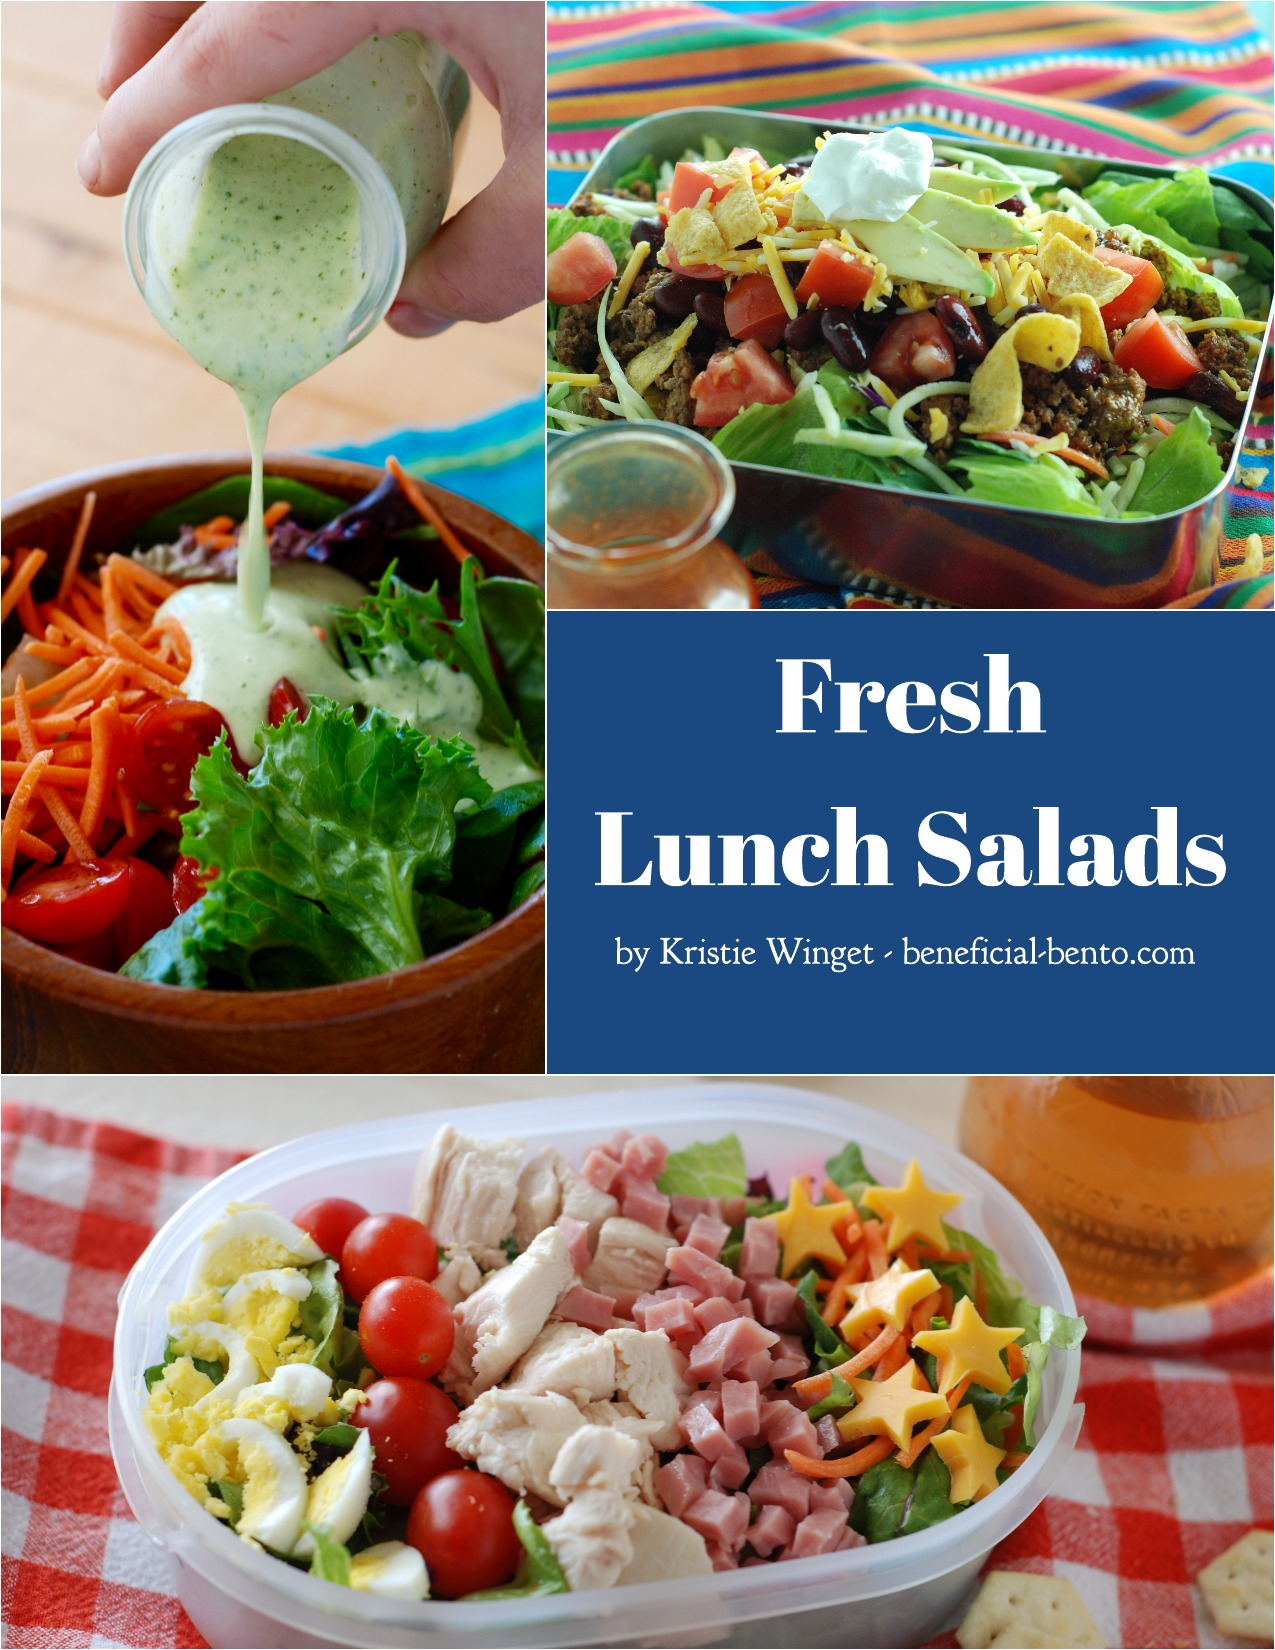 Buy my new book Fresh Lunch Salads - with 25 recipes for dressings, tossed salads, side salads, and my take on how to make some Trader Joe's salads of your own. Also contains info on making your own salad bar, salad bowl, and tips for packing mason jar salads in your lunch bag. Never pack a boring lunch again!